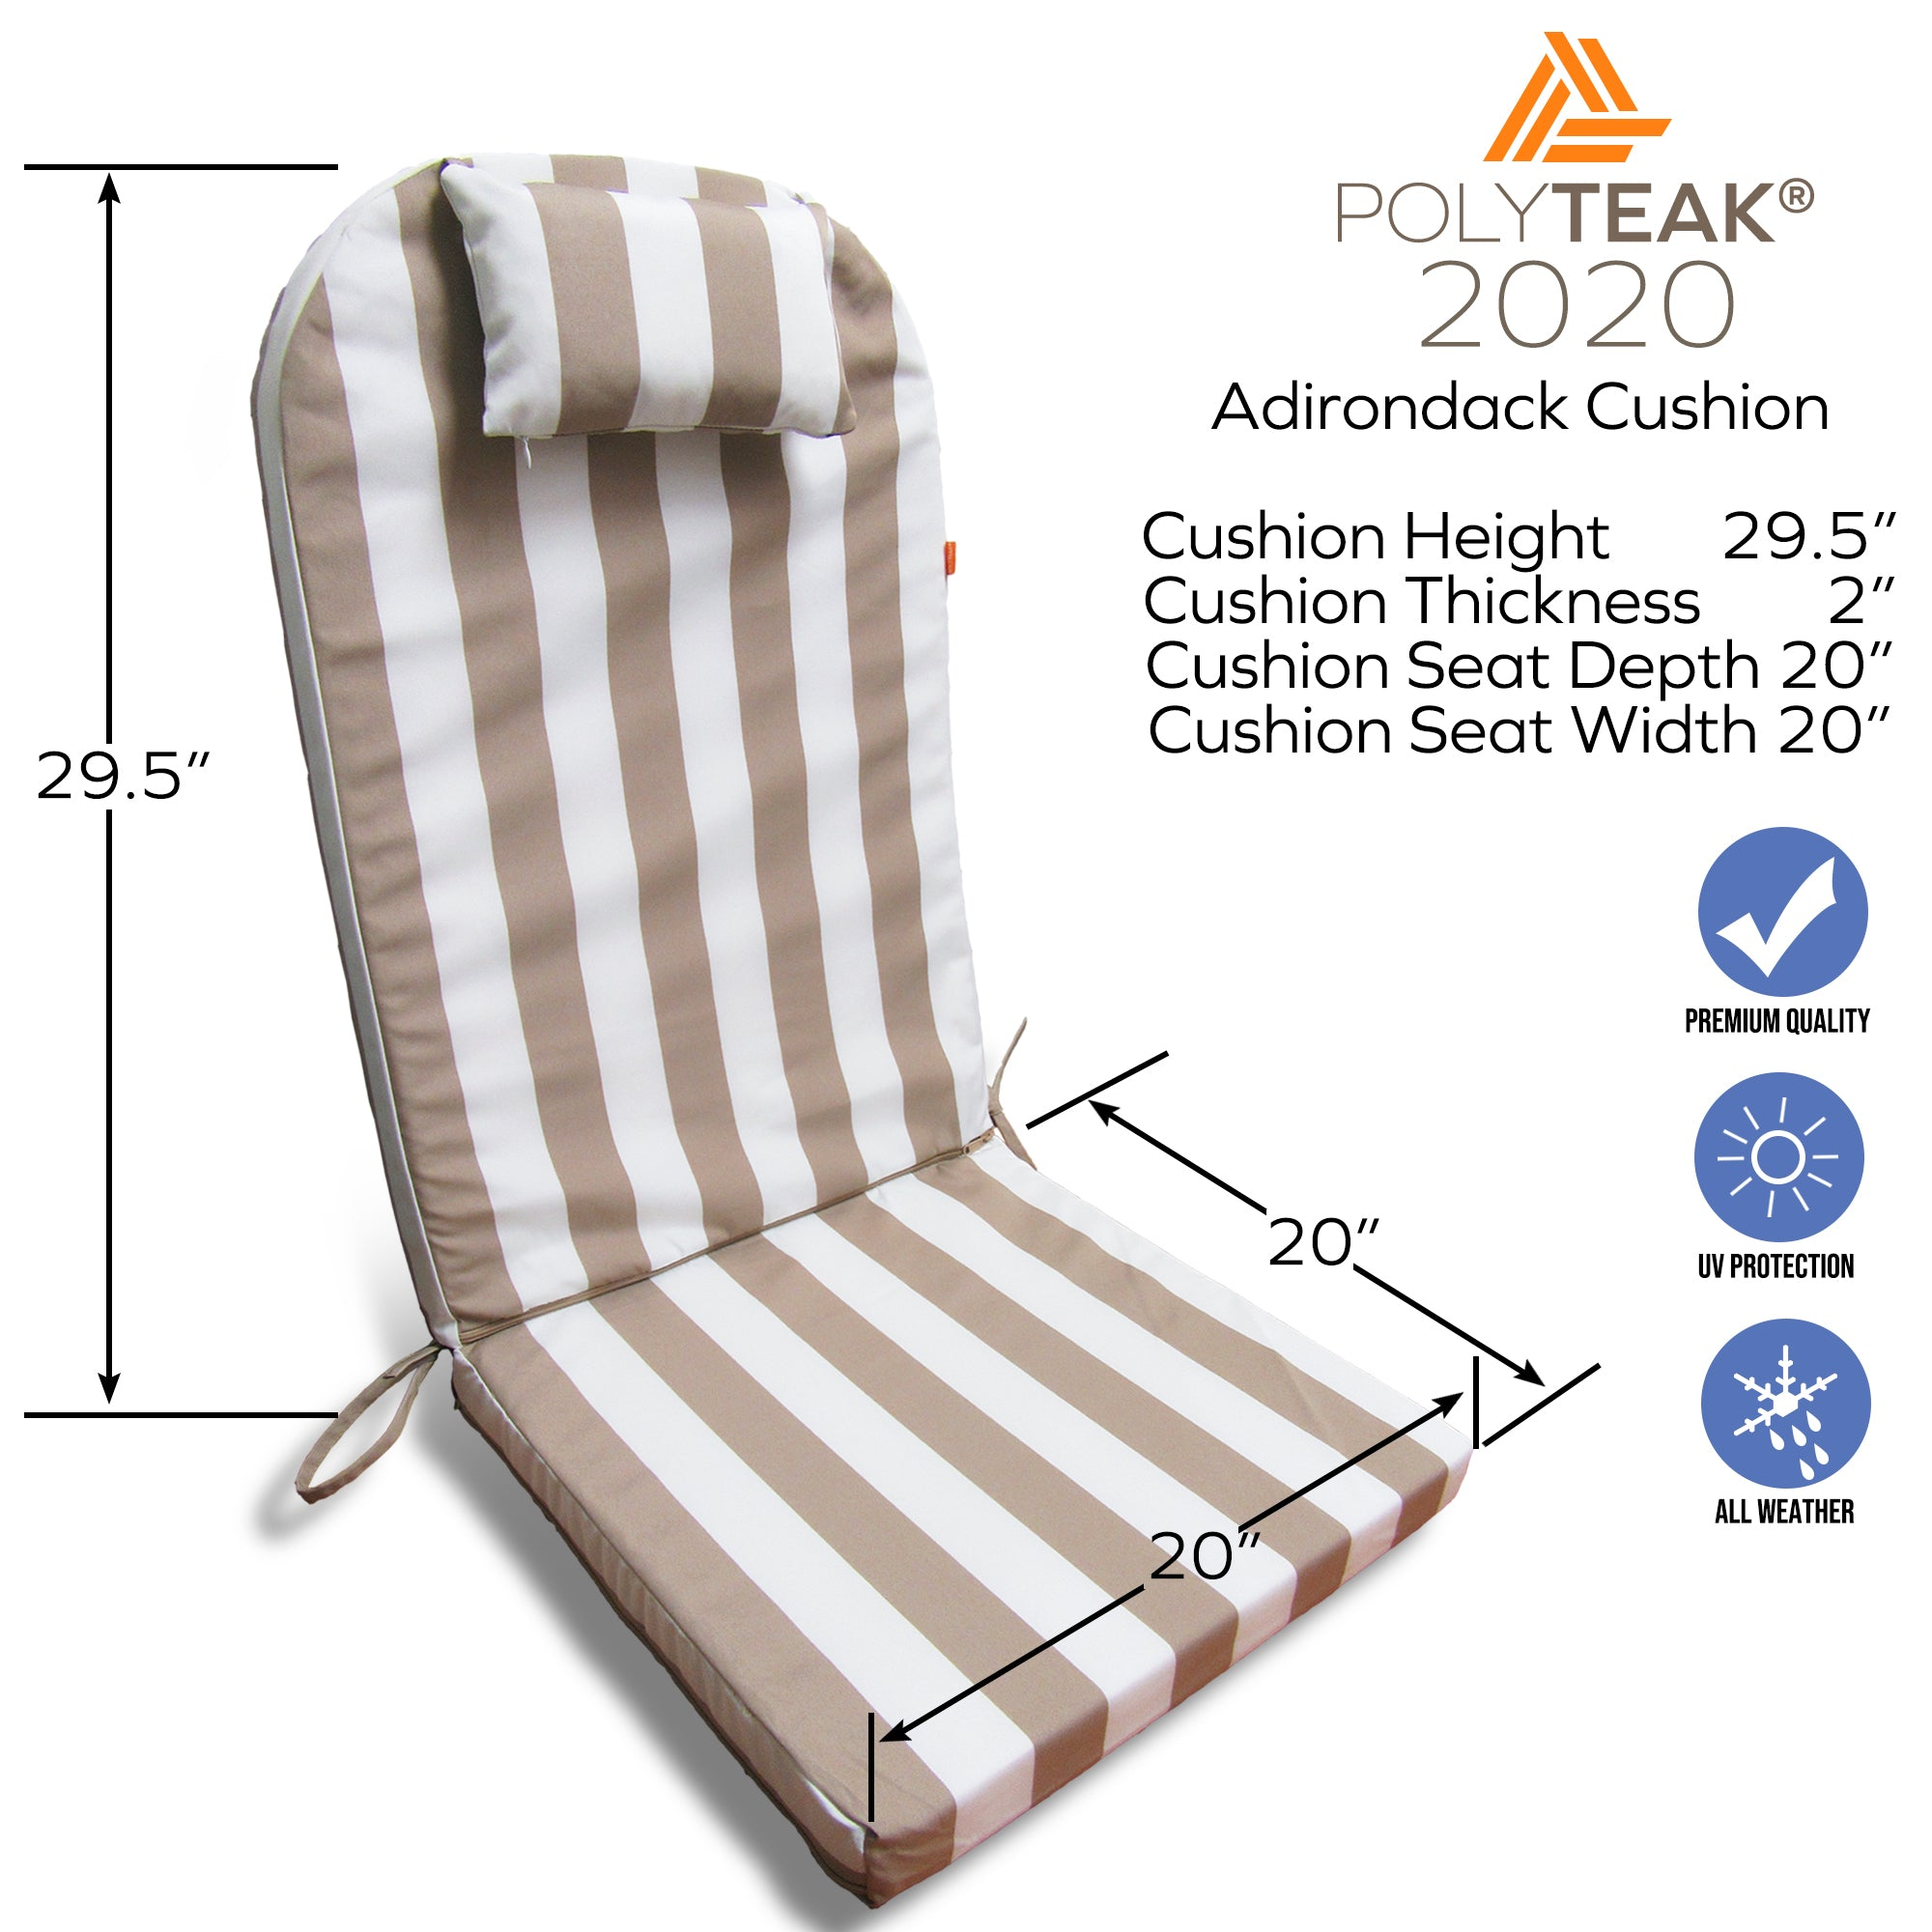 Outdoor Cushions for Adirondack Chair Indoor Outdoor High Back with Head Pillow | Set of 2 | Created and Designed in California | 100% Polyester | UV-Resistant & Water Resistant…